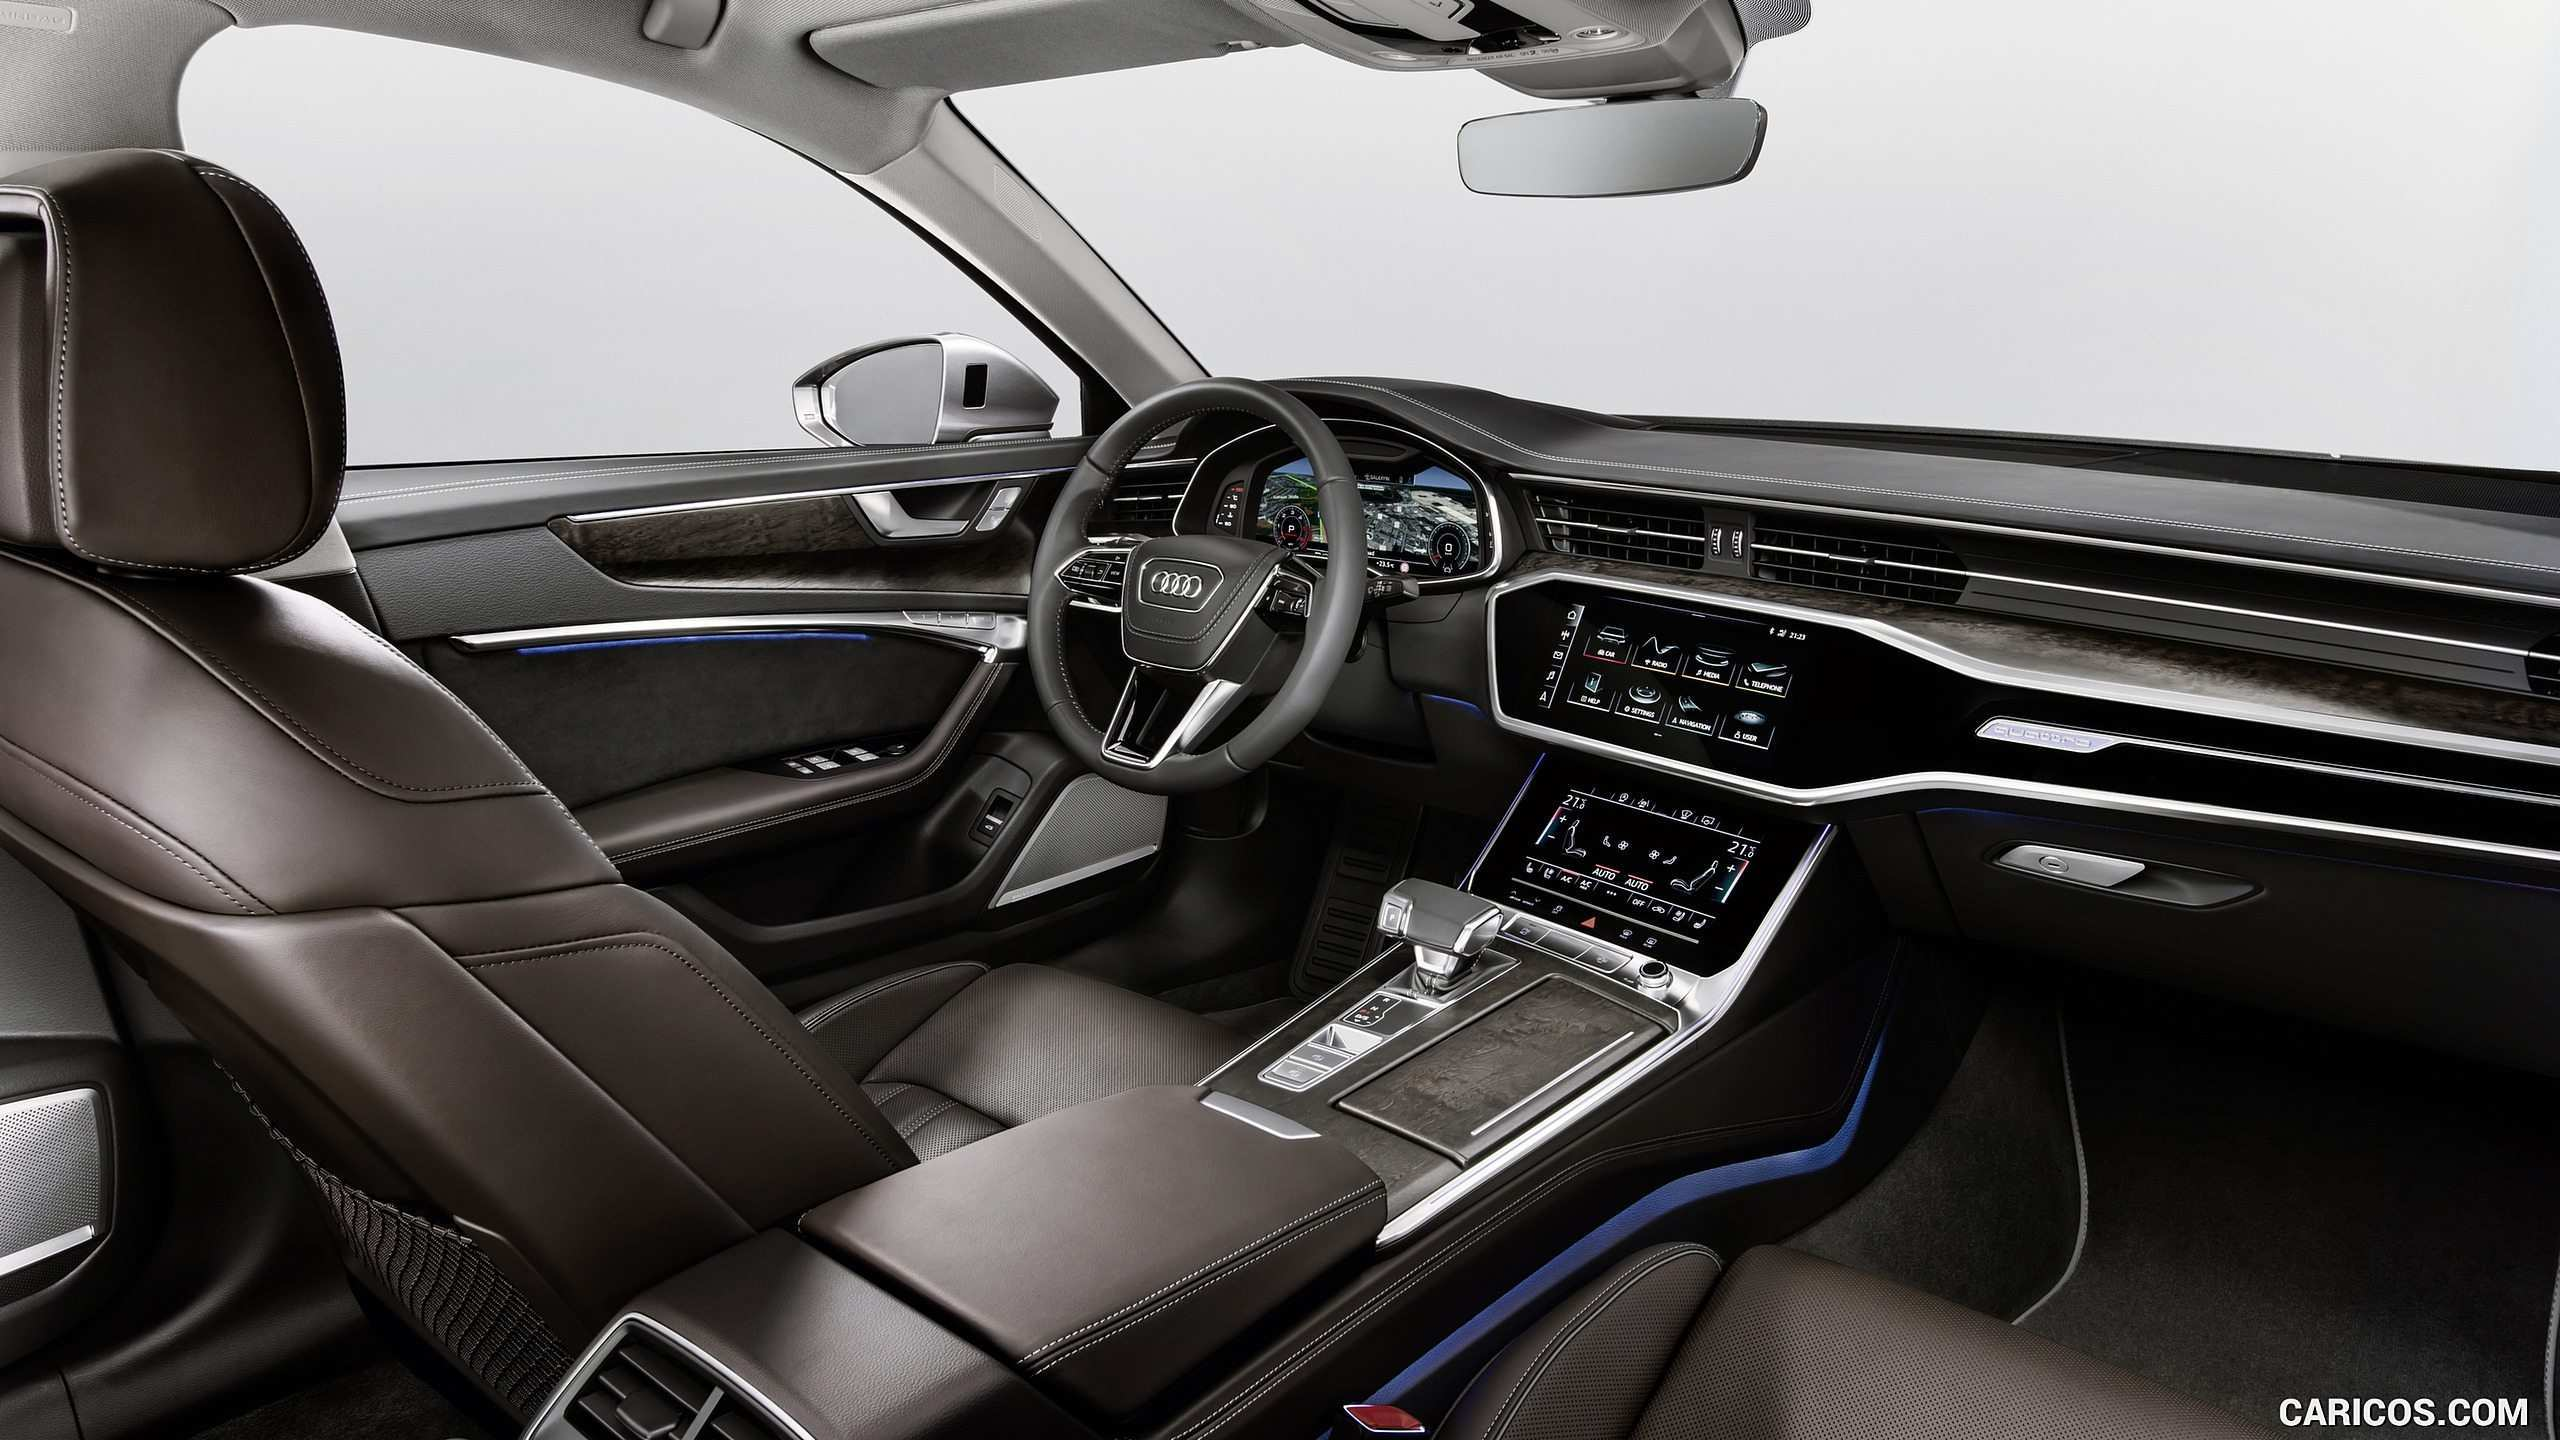 61 All New The Audi A6 2019 Launch Date Review Model for The Audi A6 2019 Launch Date Review